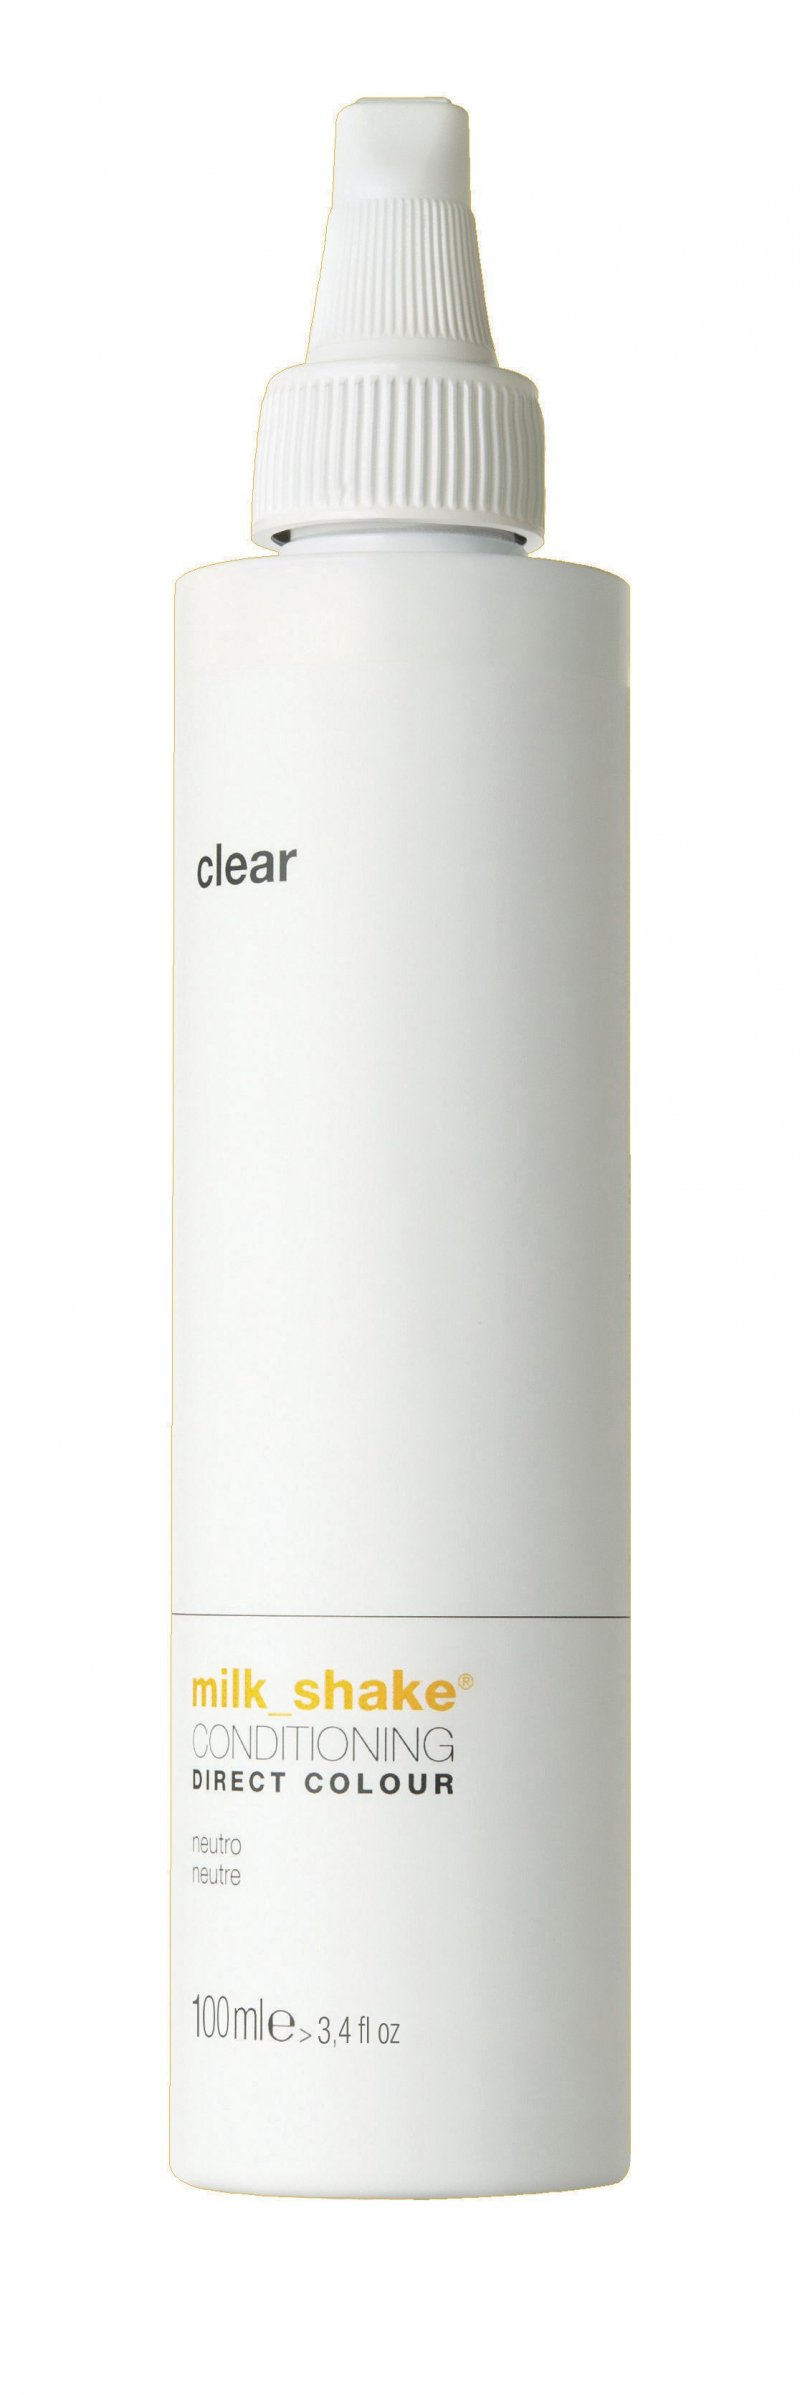 Milk_shake - Direct Color 100 Ml - Clear